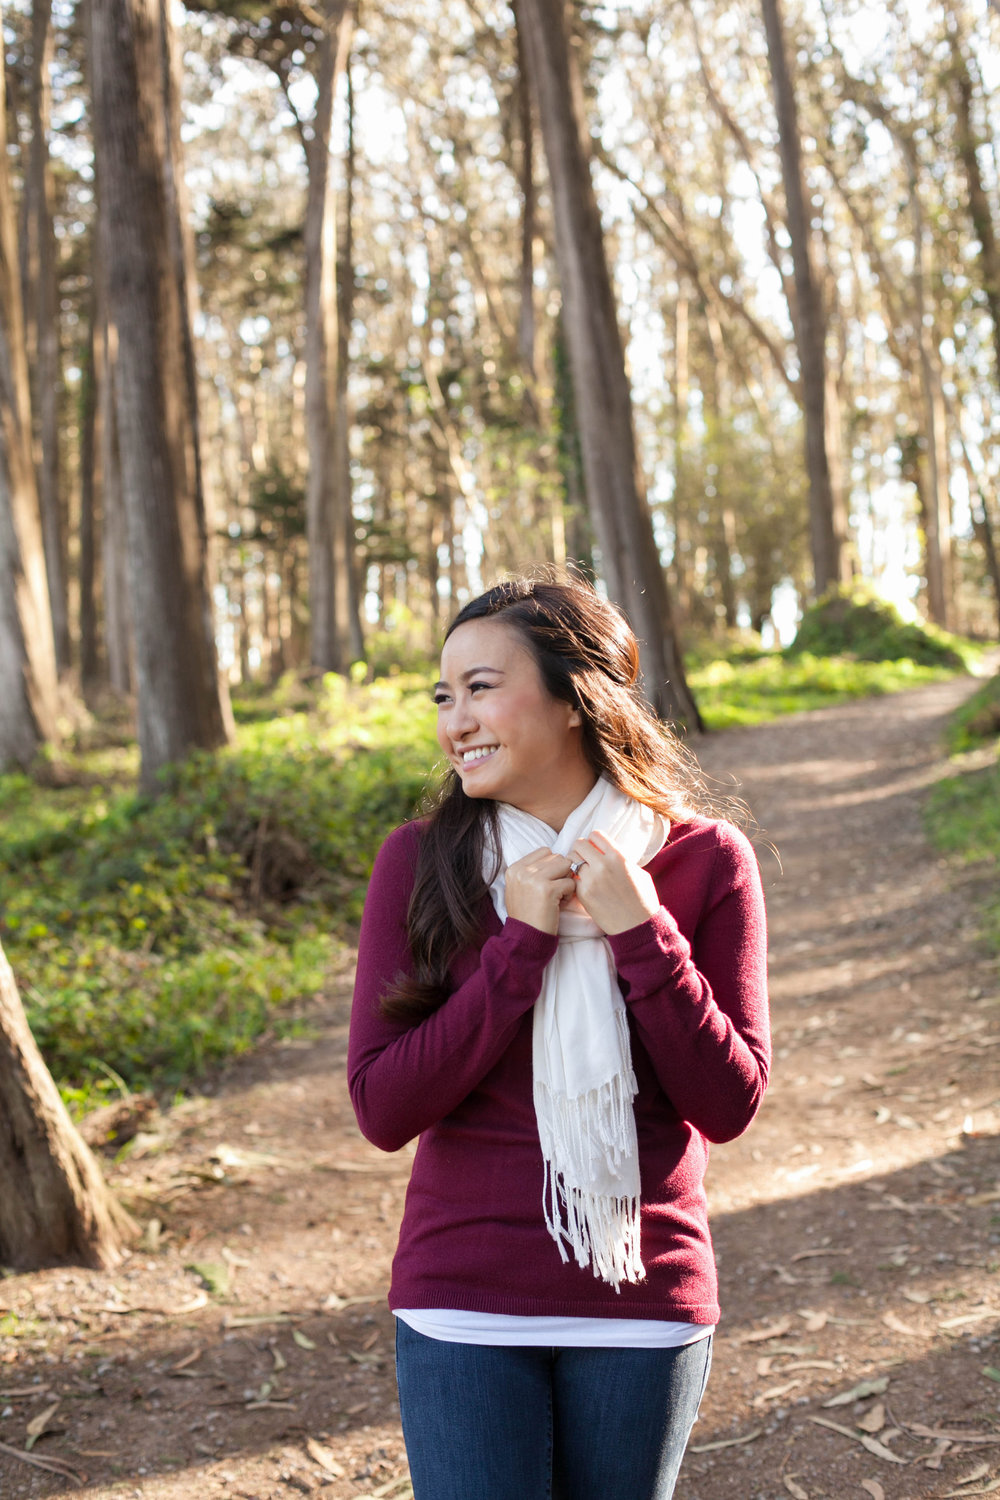 Meo Baaklini-San Francisco Presidio Engagement Photographer16.jpg